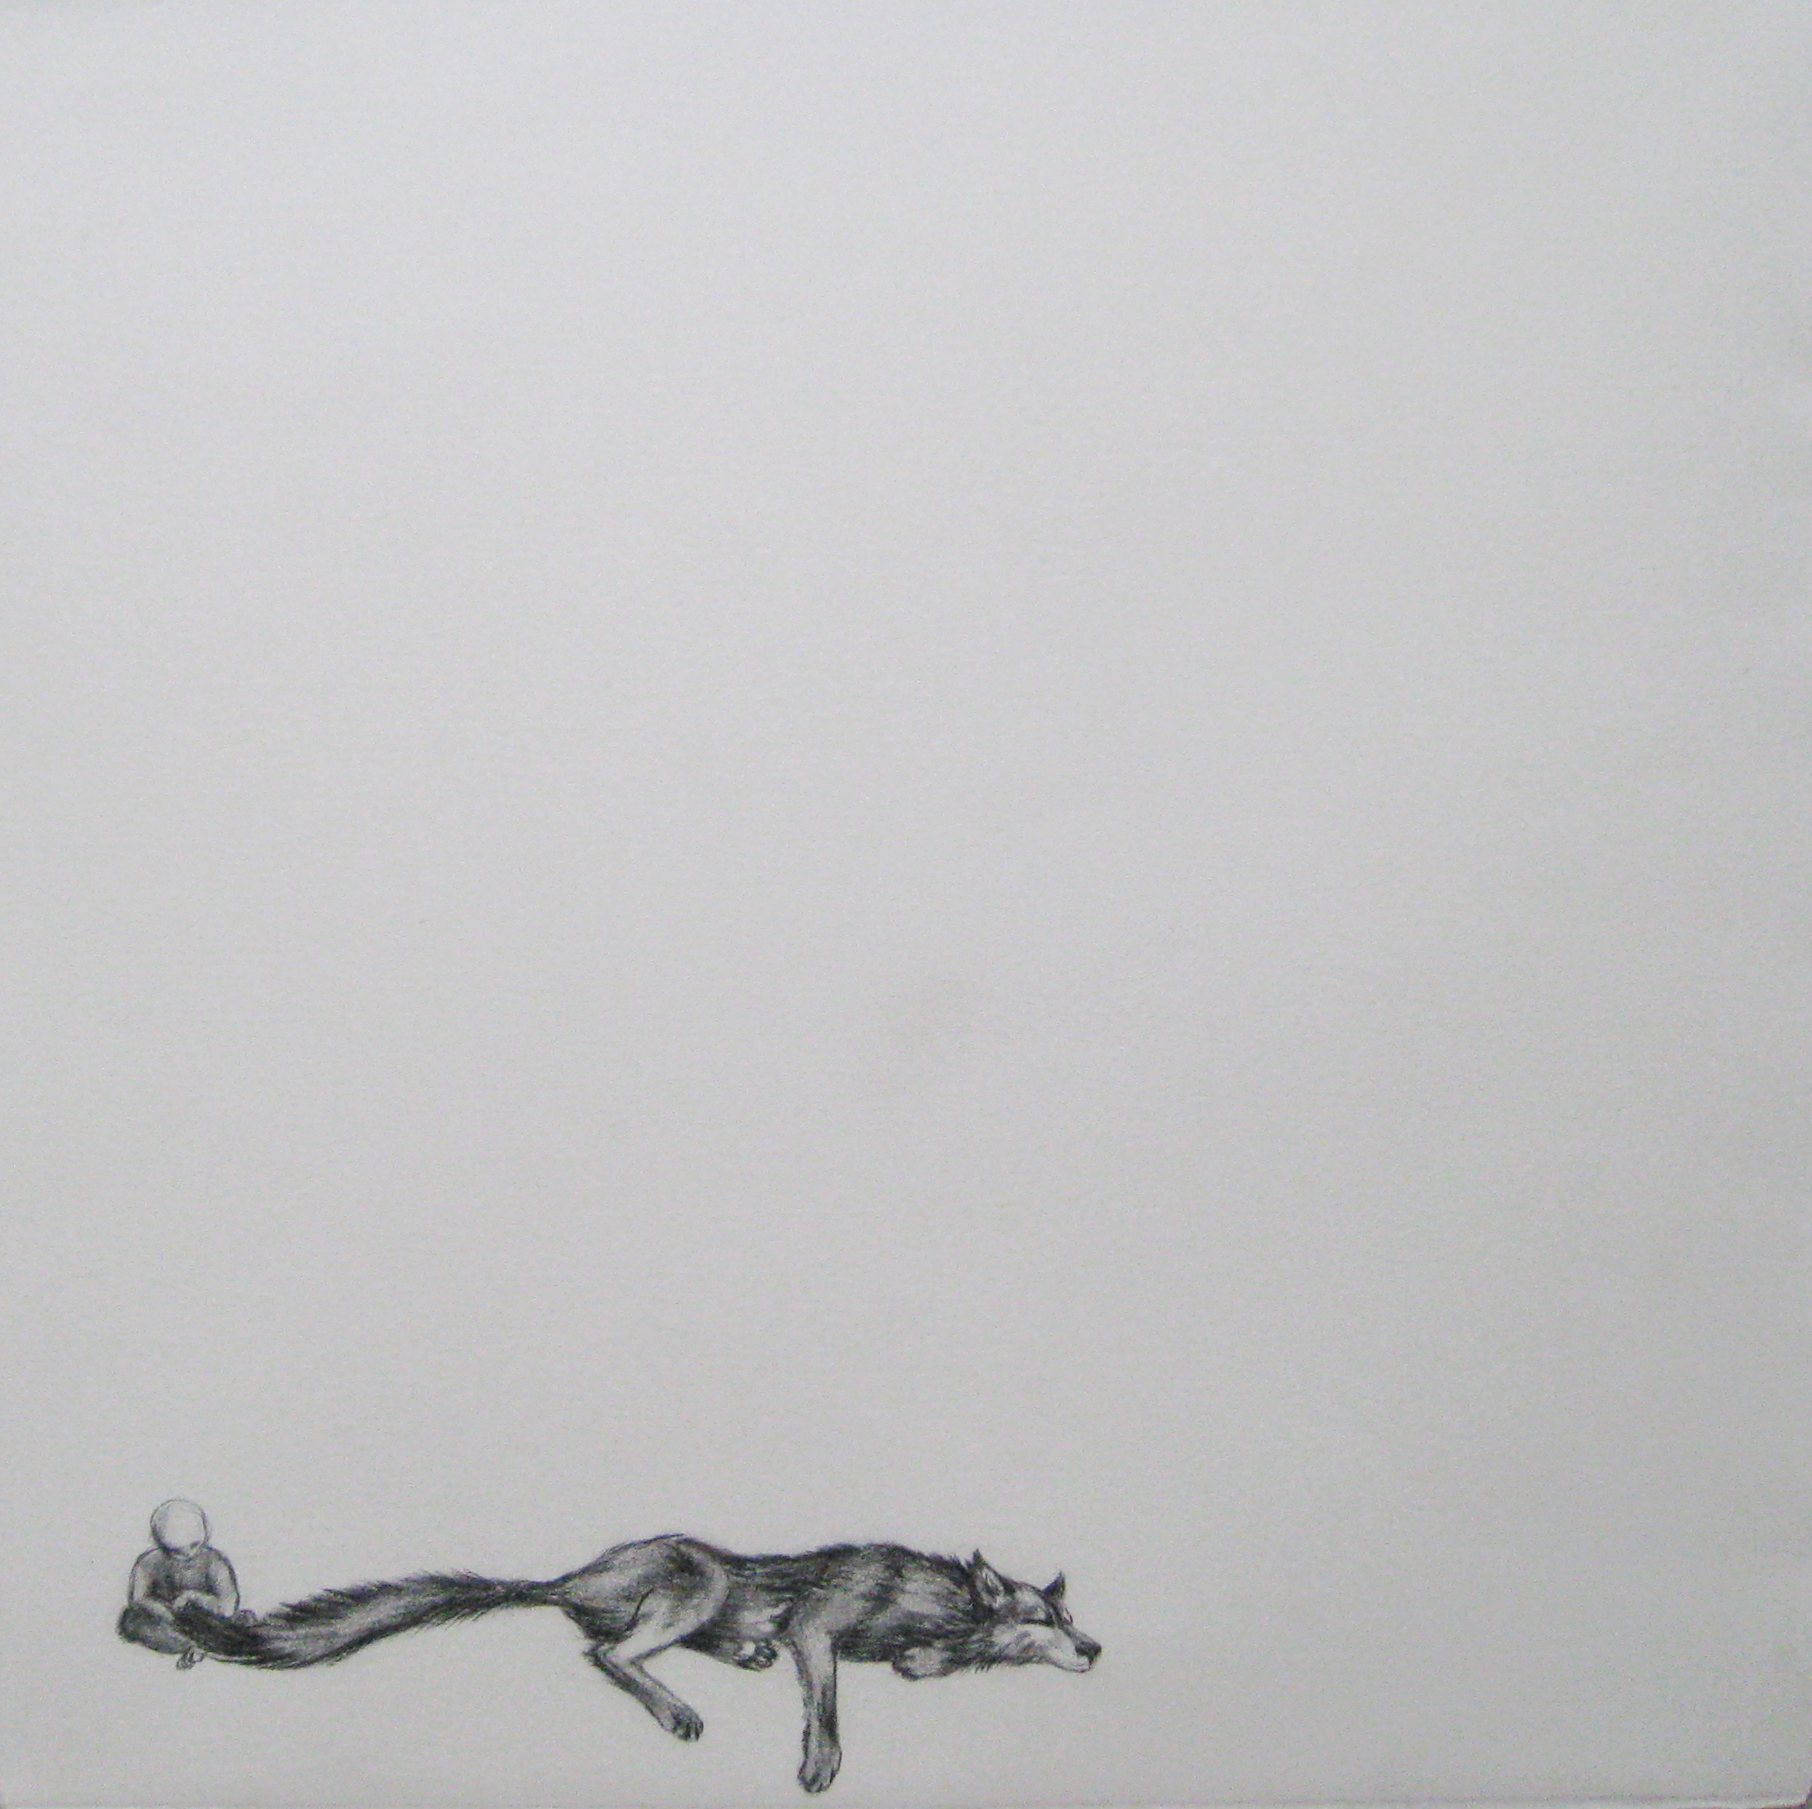 """Untitled1/3, 2005  Charcoal on paper  14x14"""""""